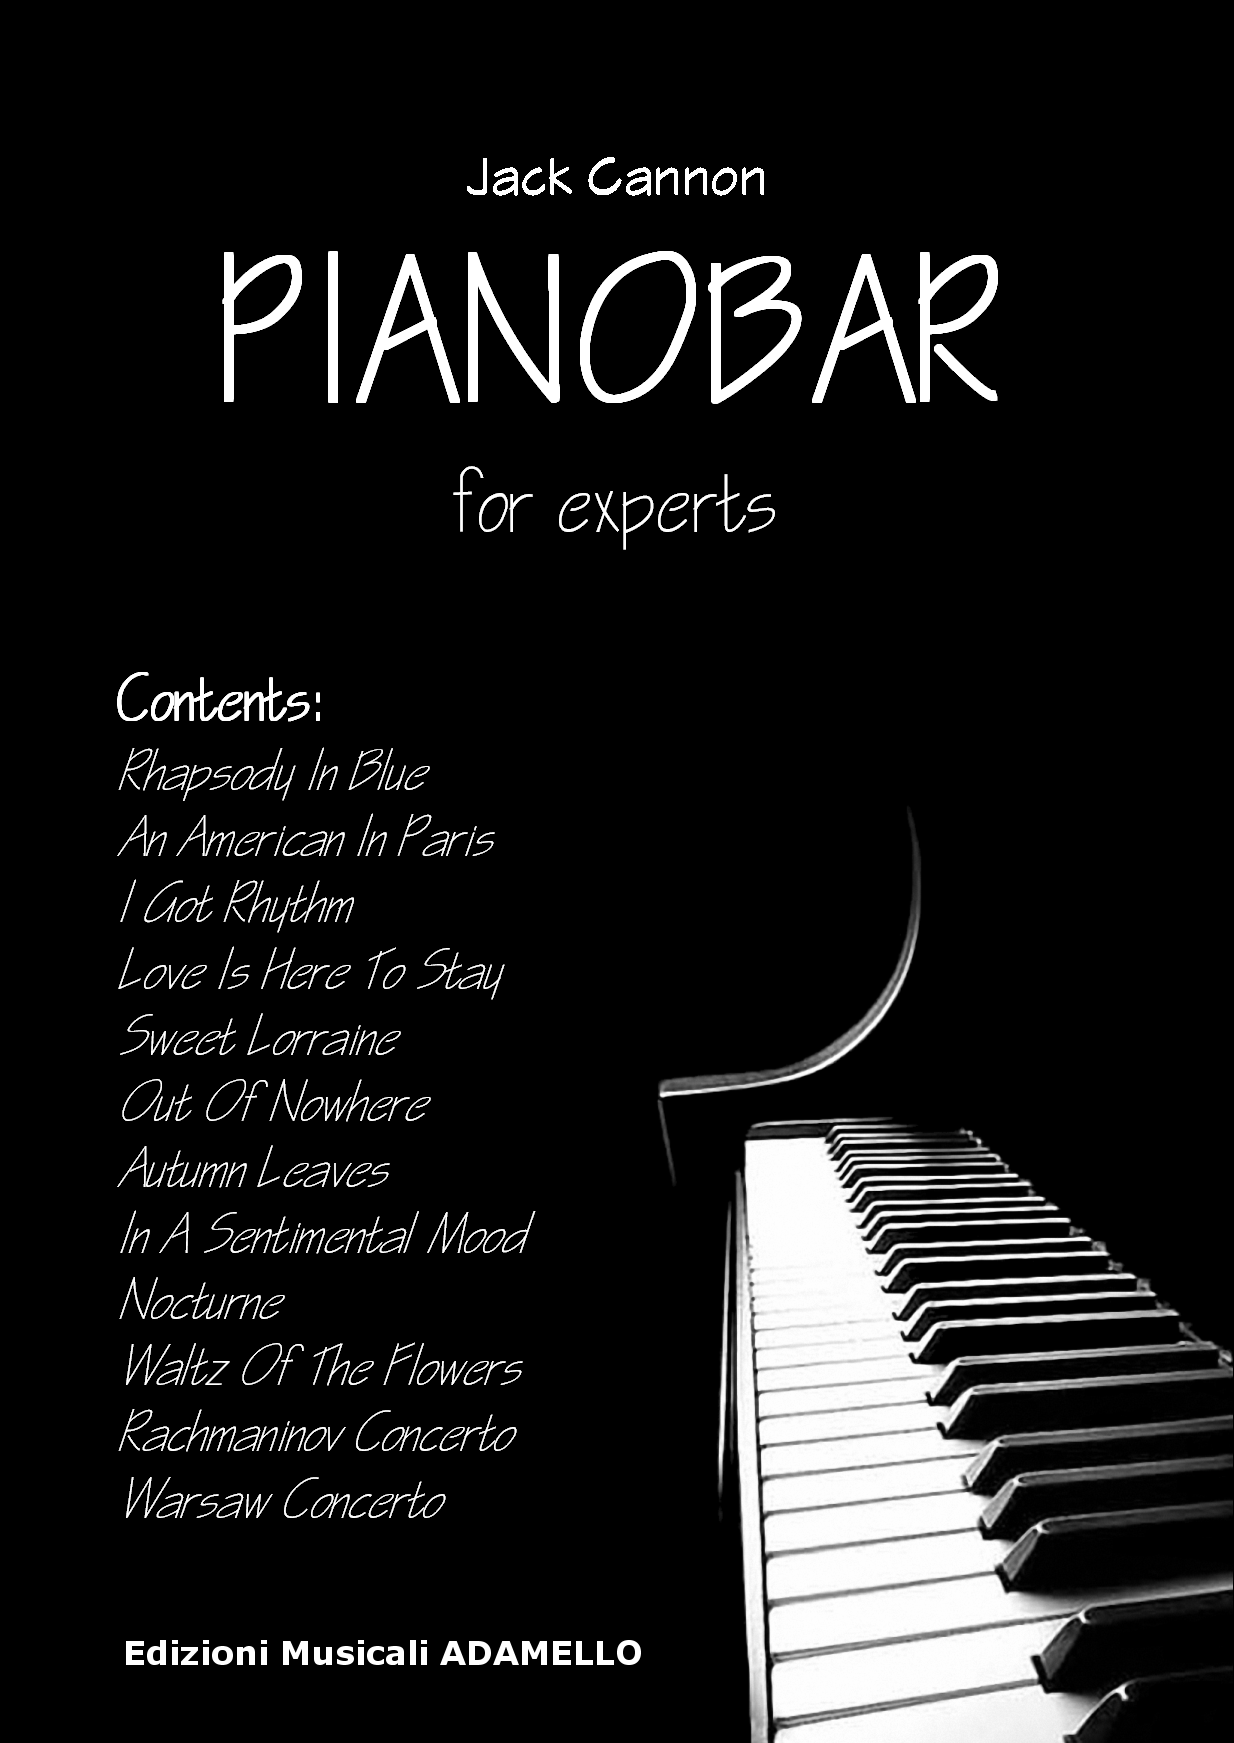 PIANOBAR for experts